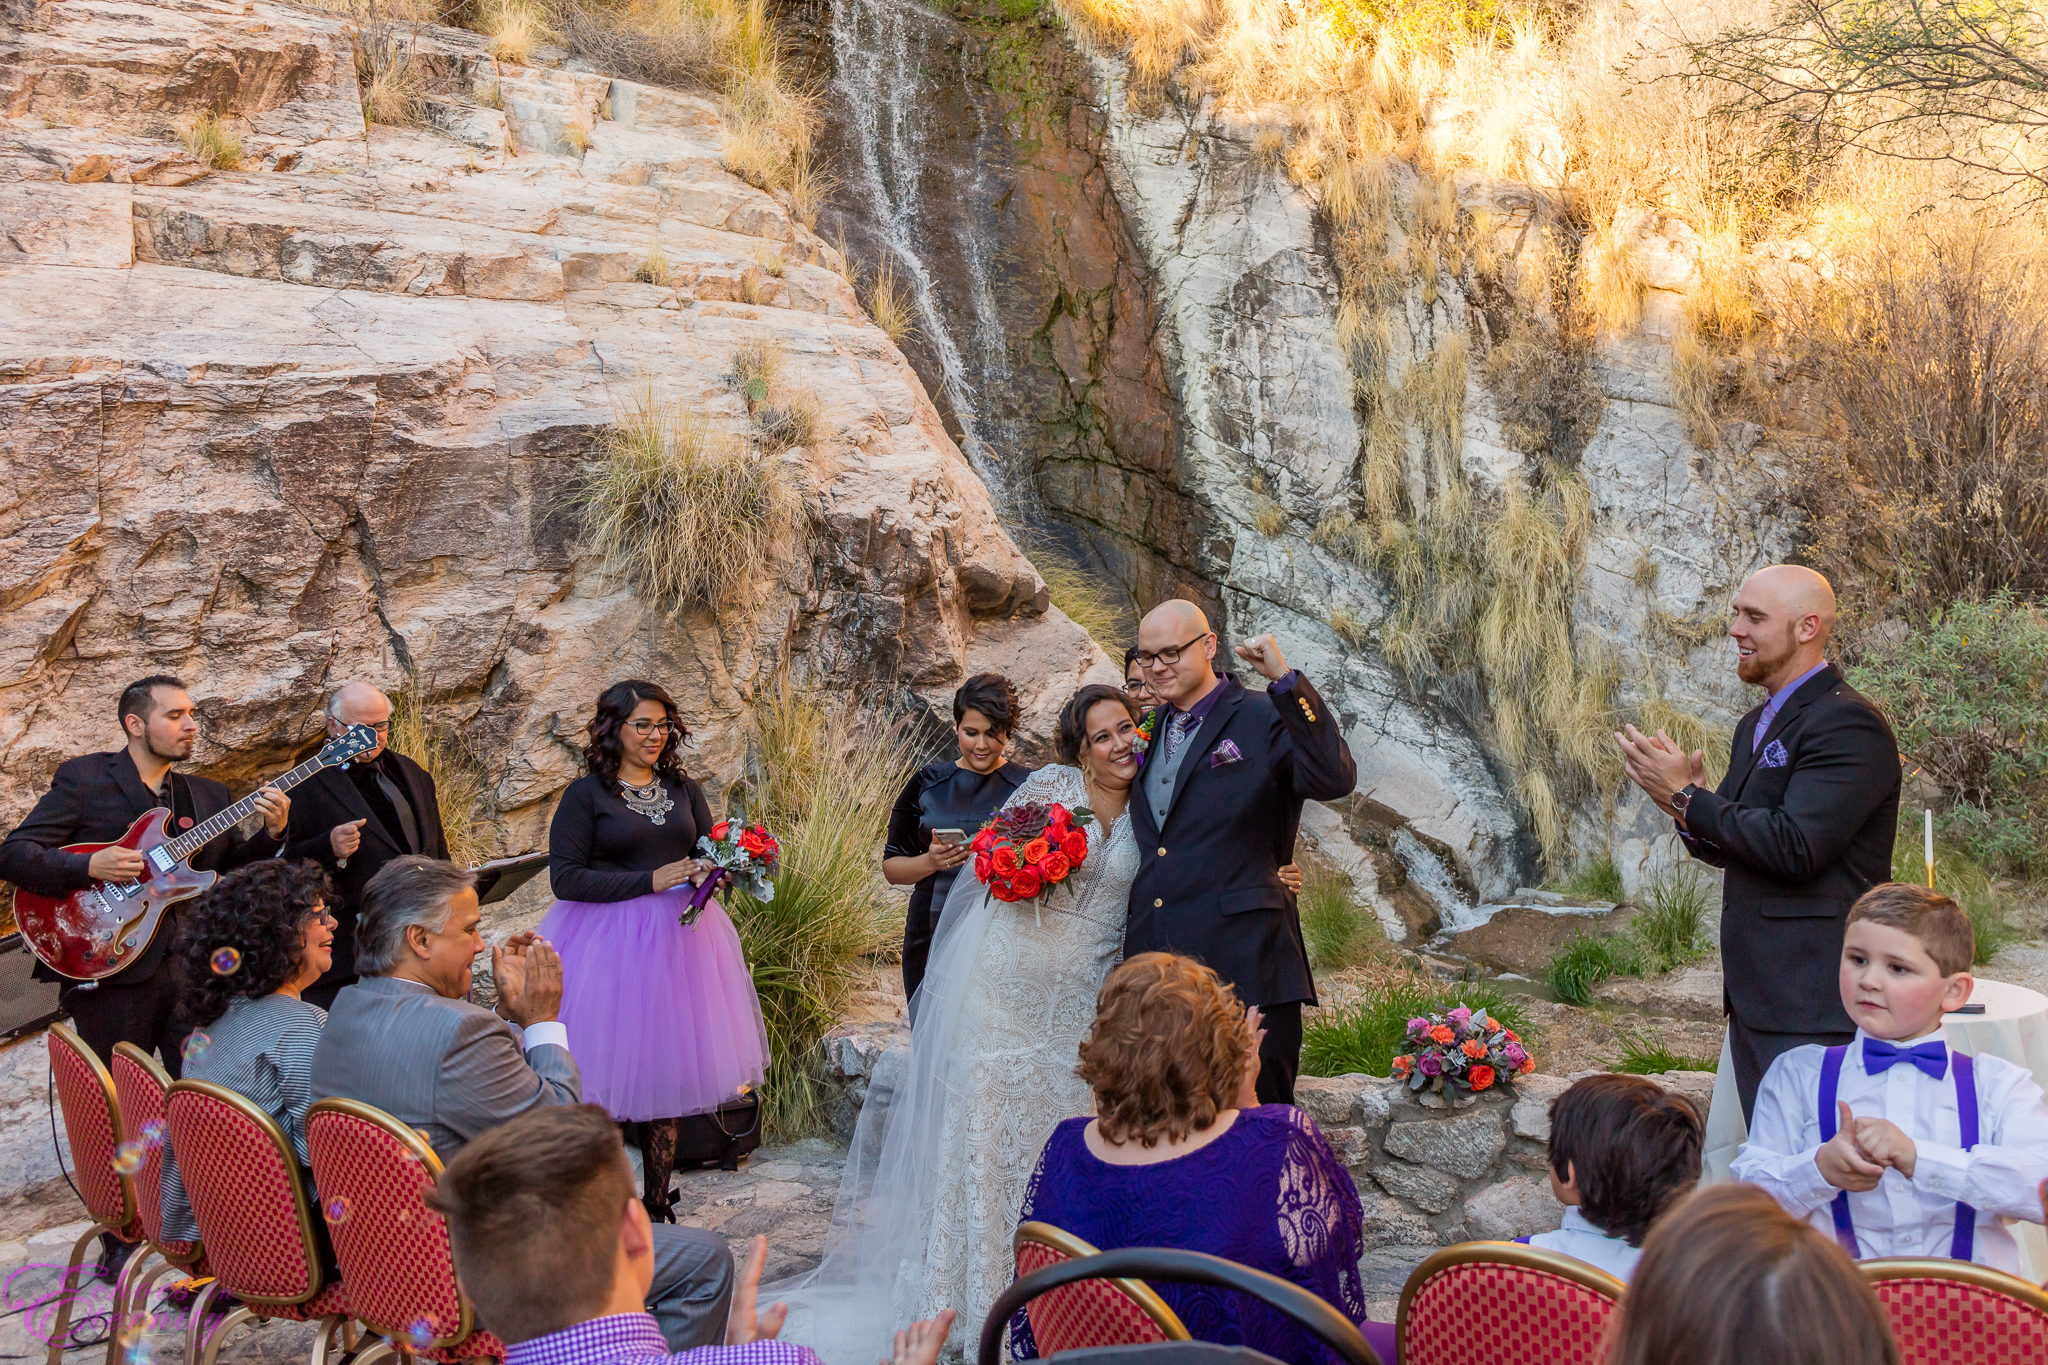 The Wedding of Zuri and George Tucson Arizona Wedding Photographer Lowes Ventana Canyon 10.jpg